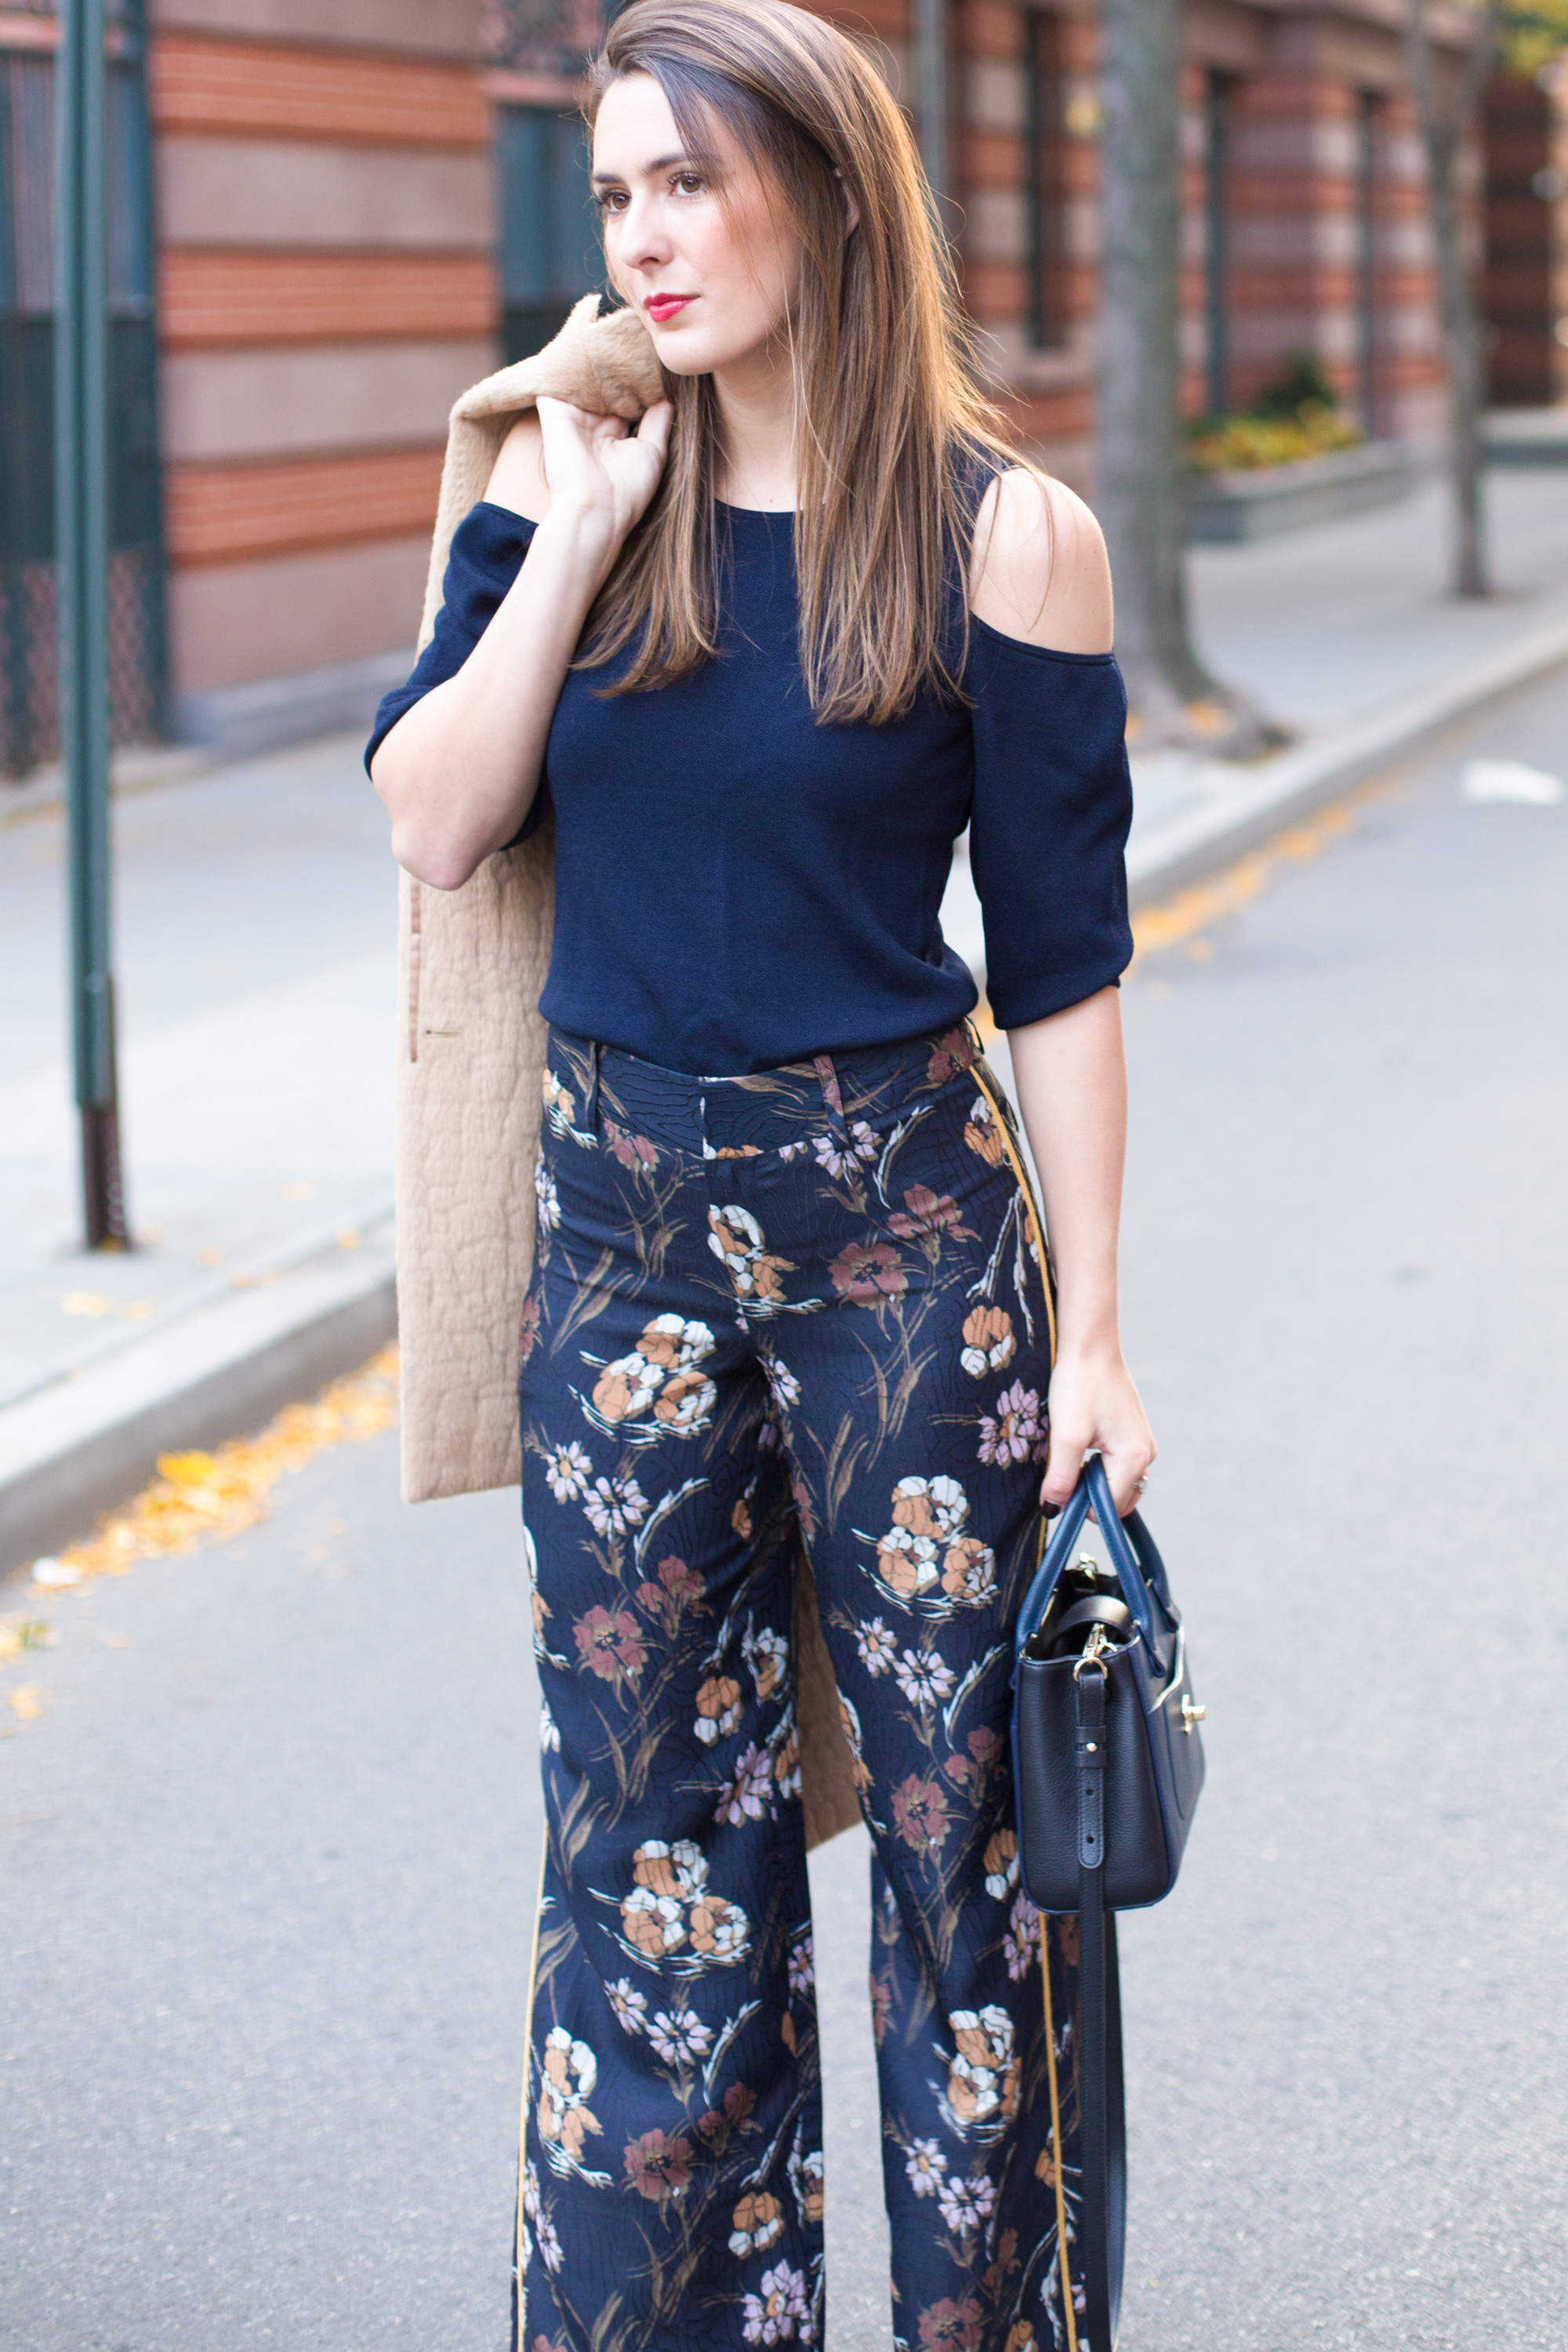 Samantha Metell Style Blogger and Photographer